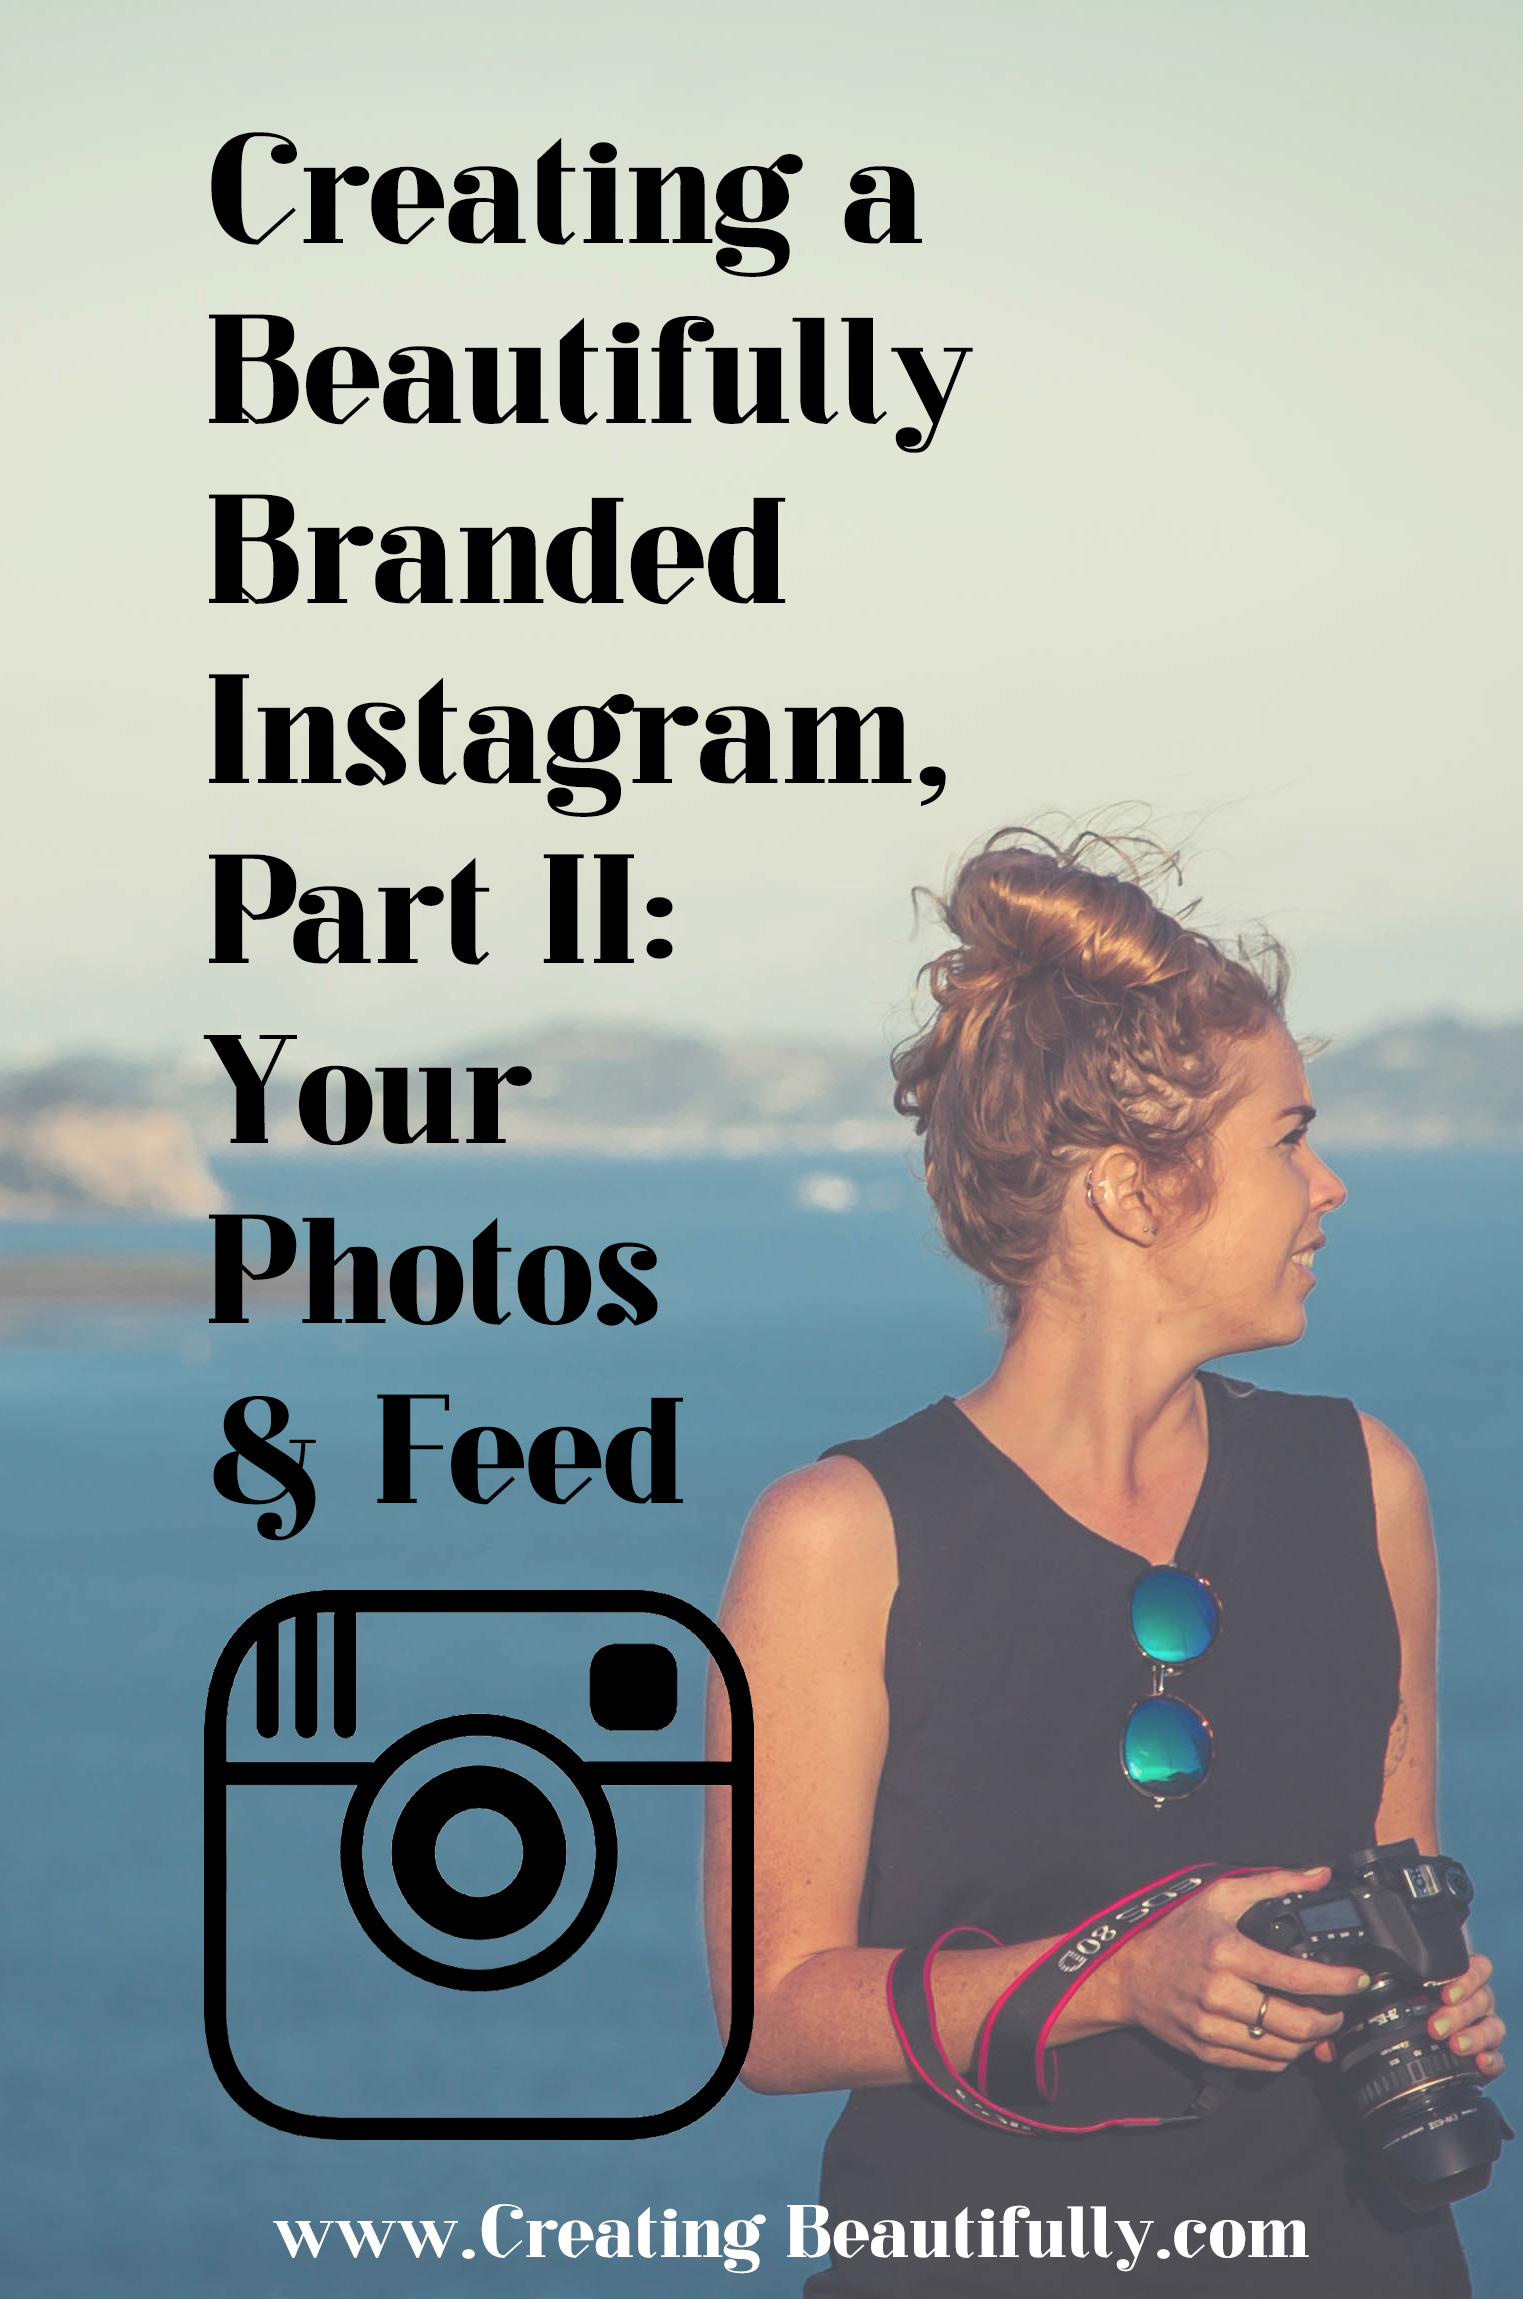 This looks awesome! Creating a Beautifully Branded Instagram Part II: Your Photos & Feed